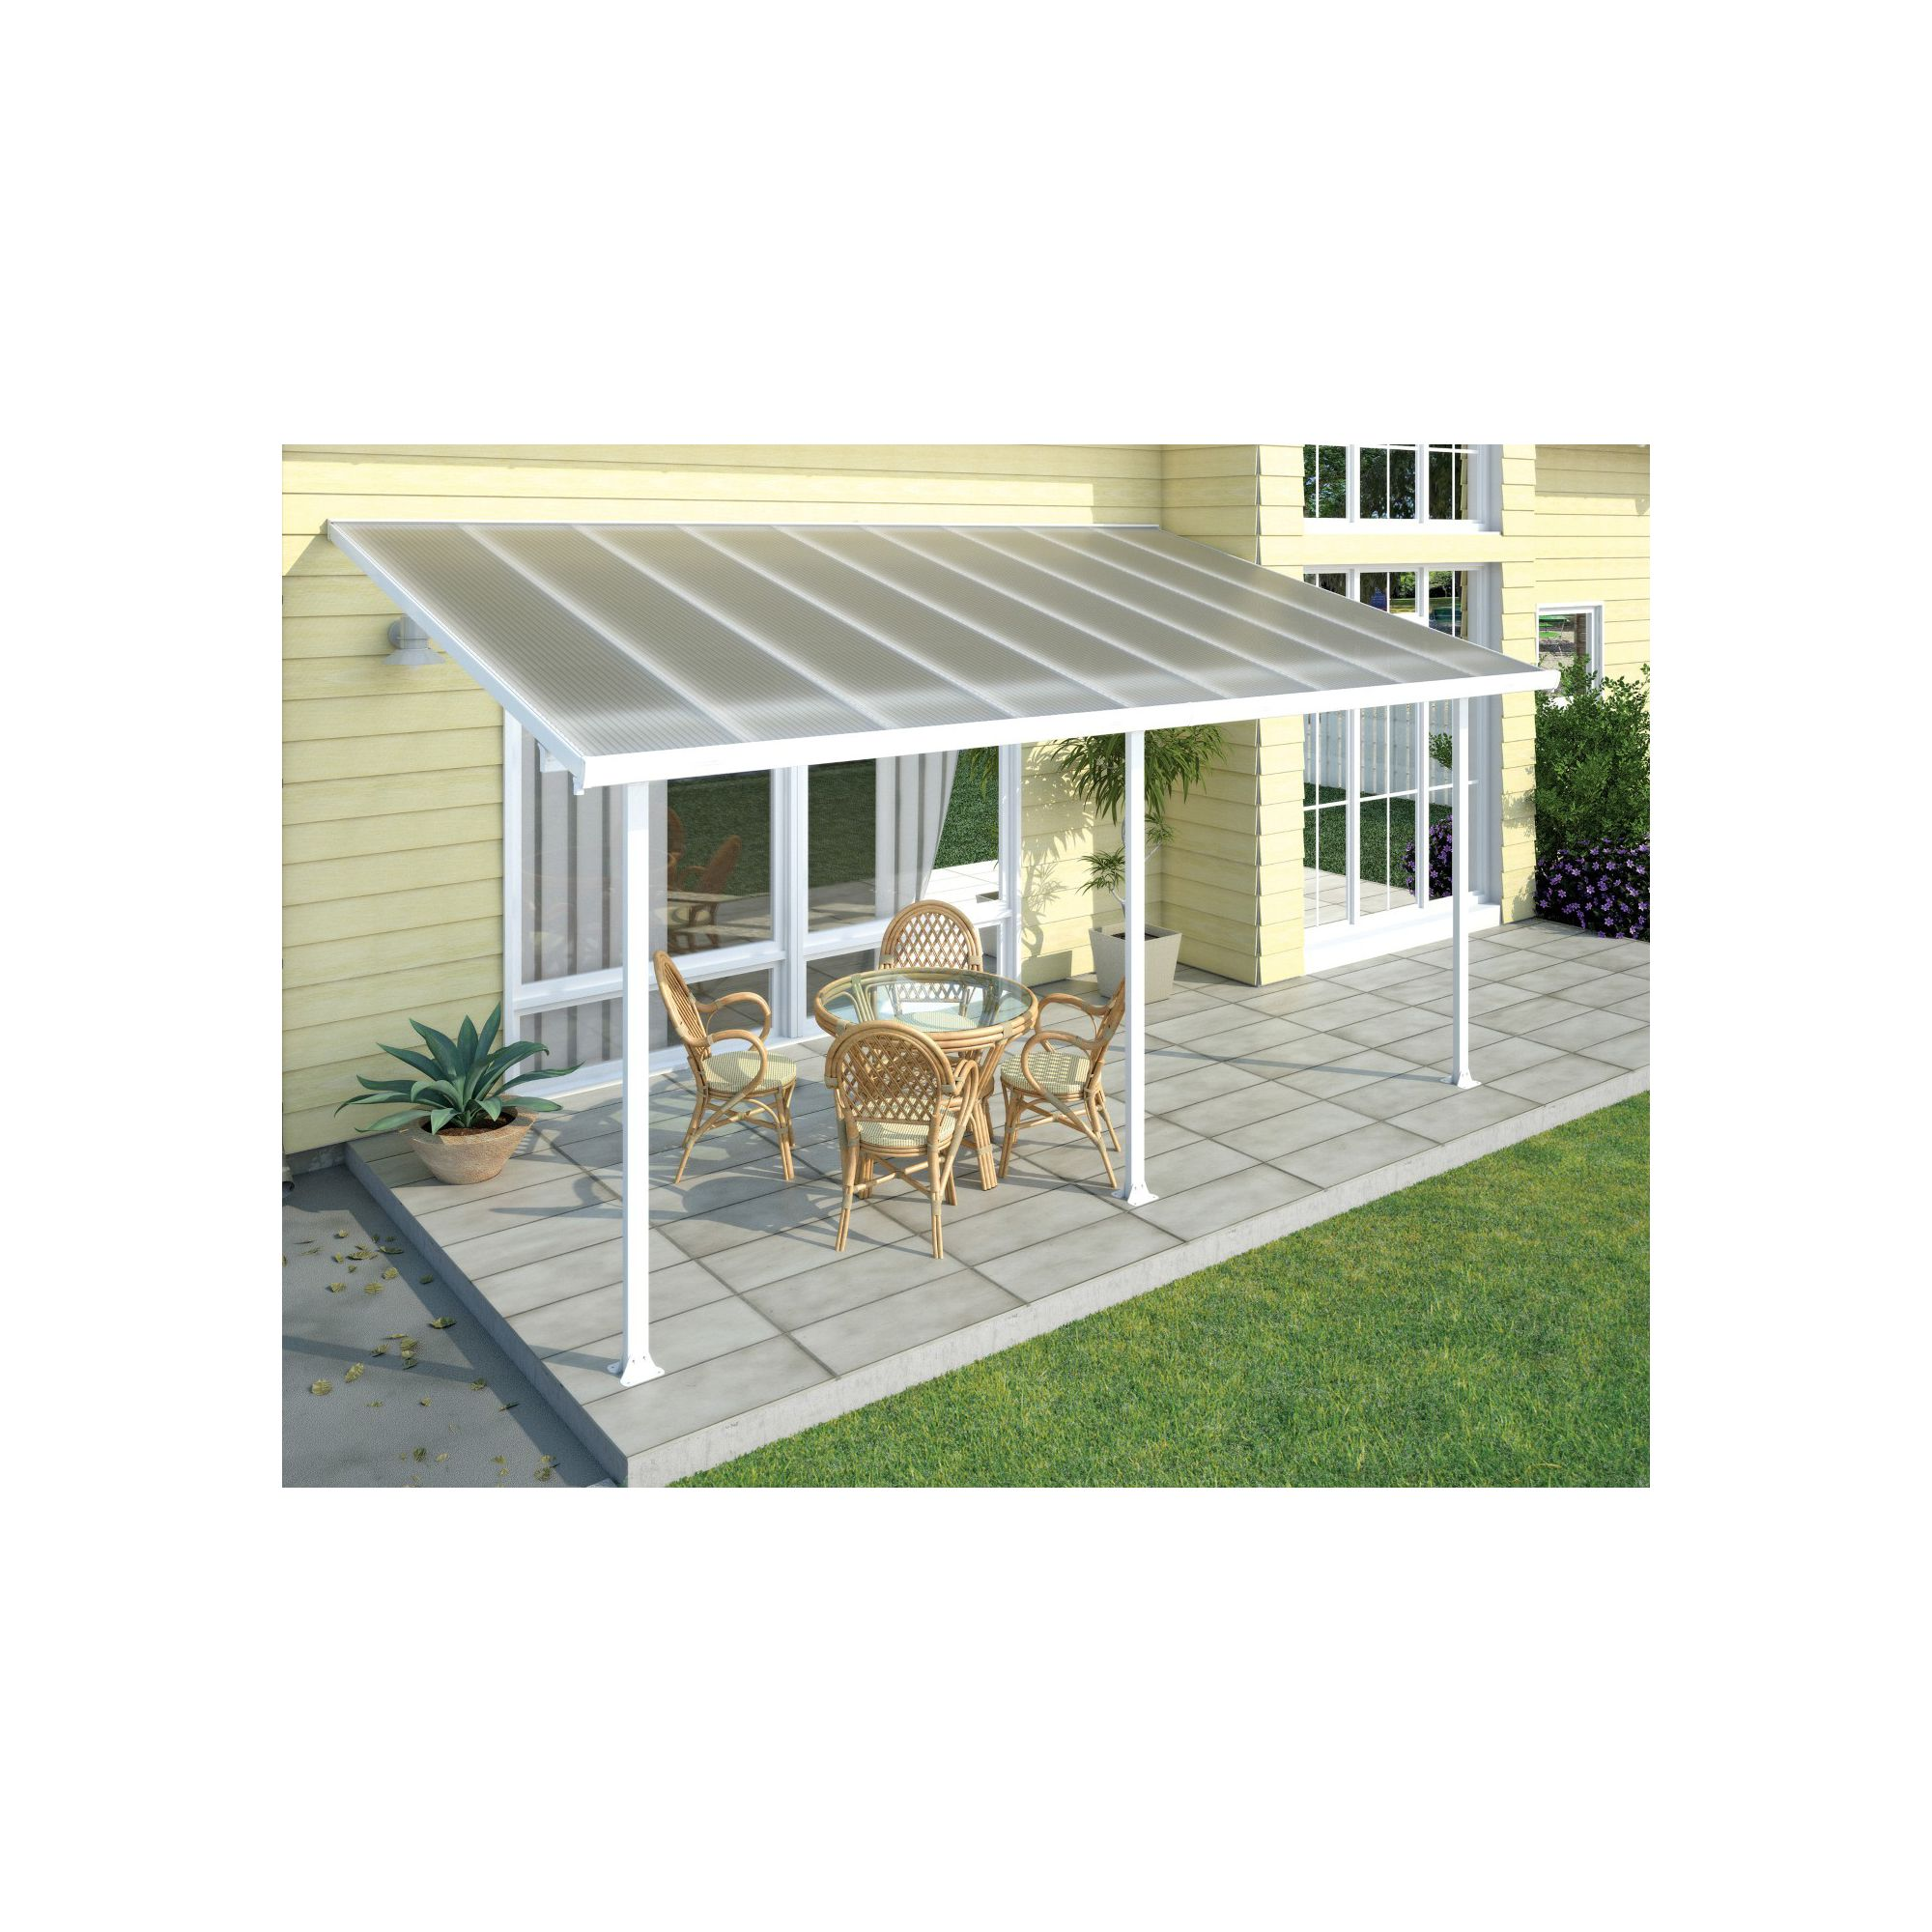 FERIA LEAN TO CARPORT AND PATIO COVER 4X8.5 WHITE at Tesco Direct